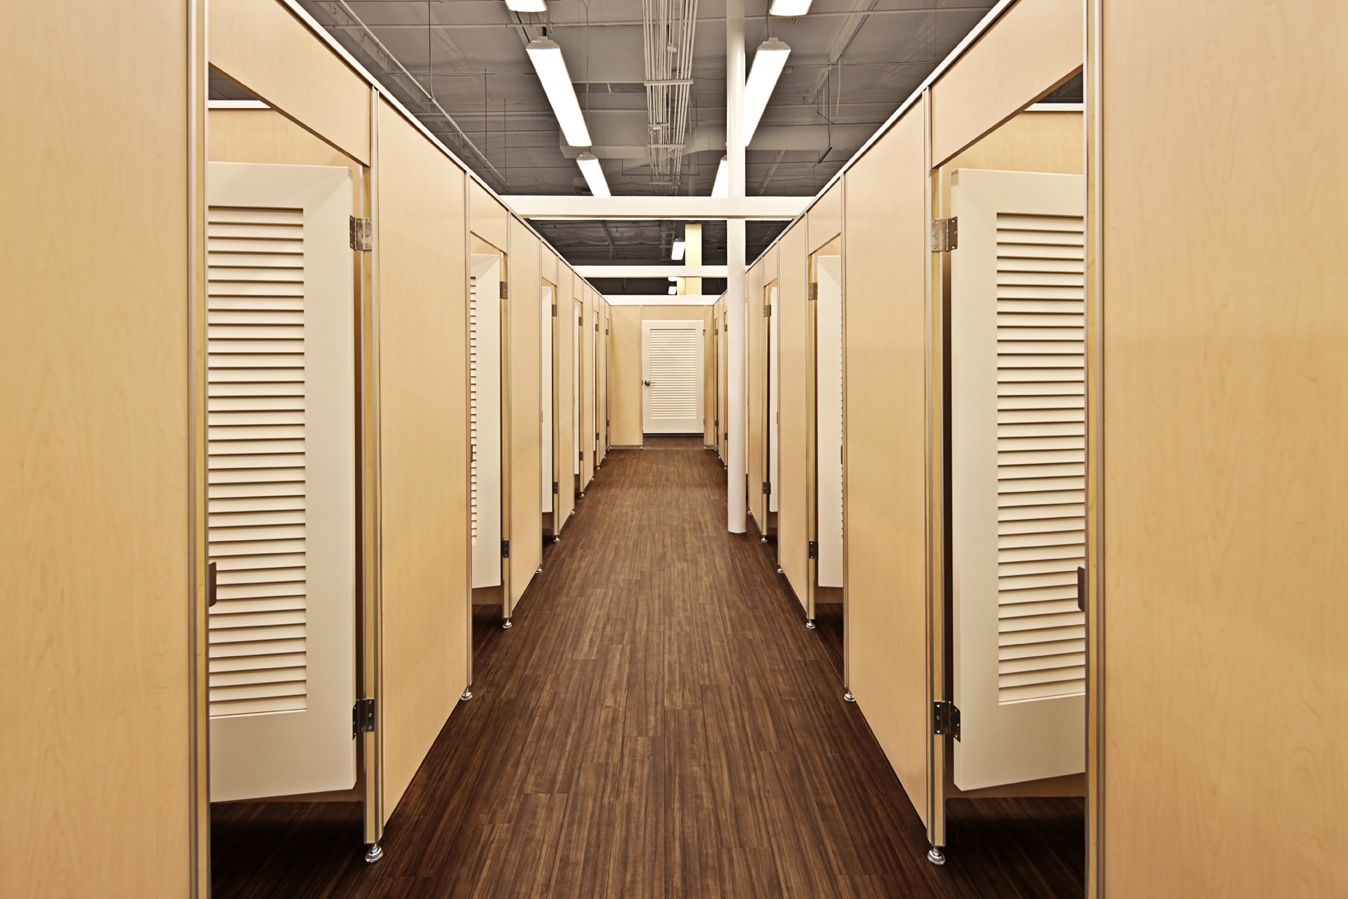 Burlington Fitting Rooms Image 2_low.jpg